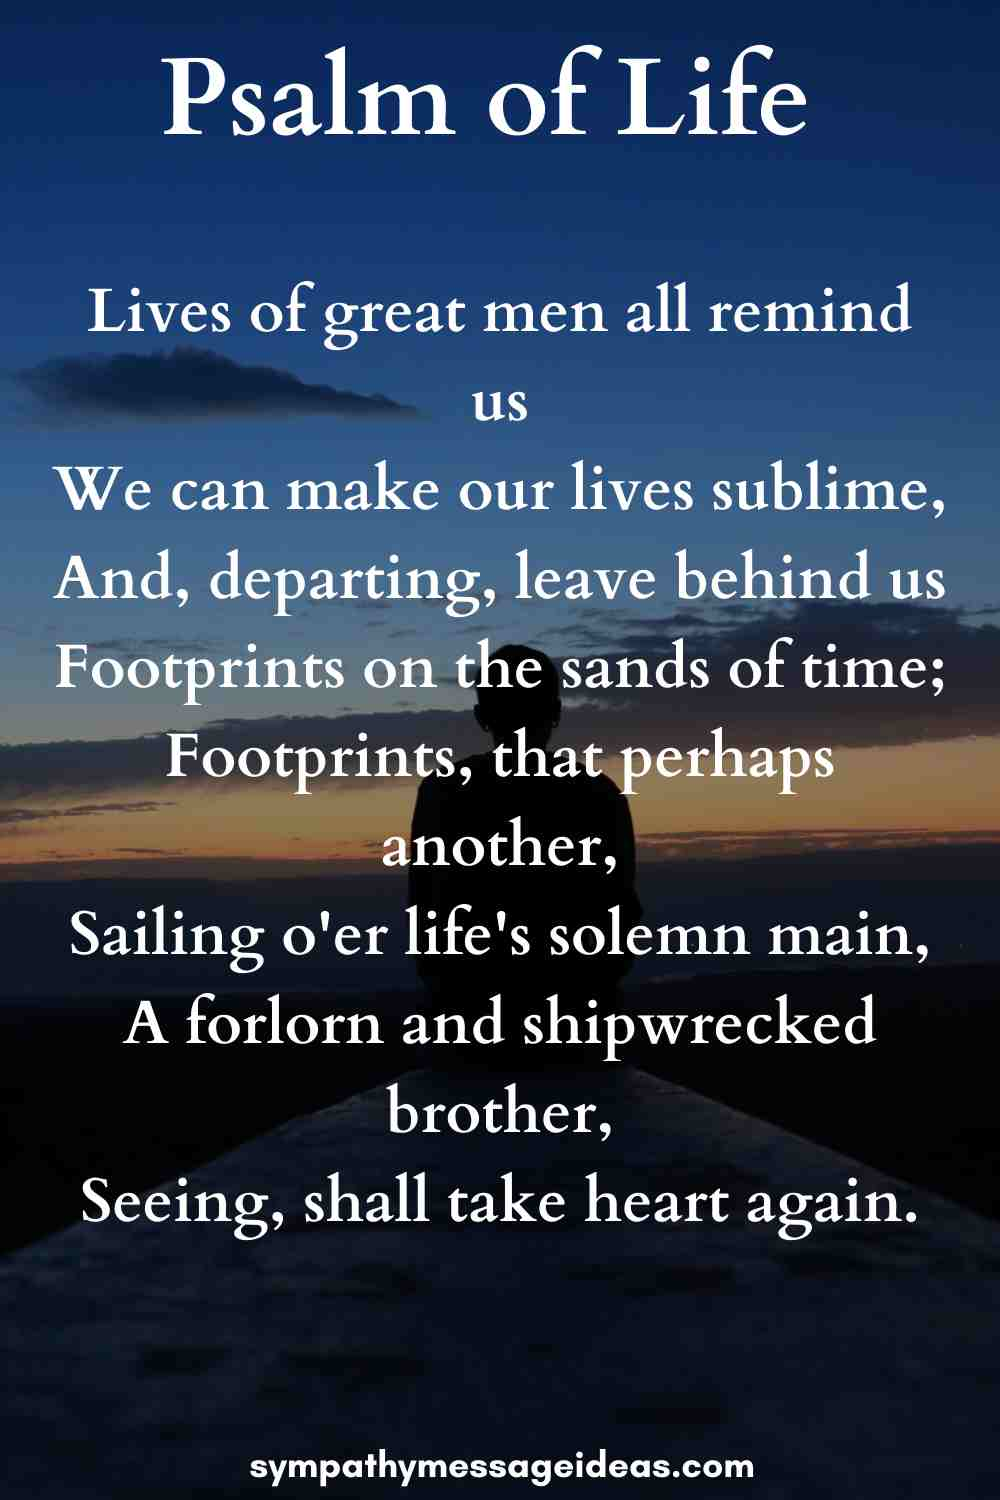 Psalm of life famous funeral poem